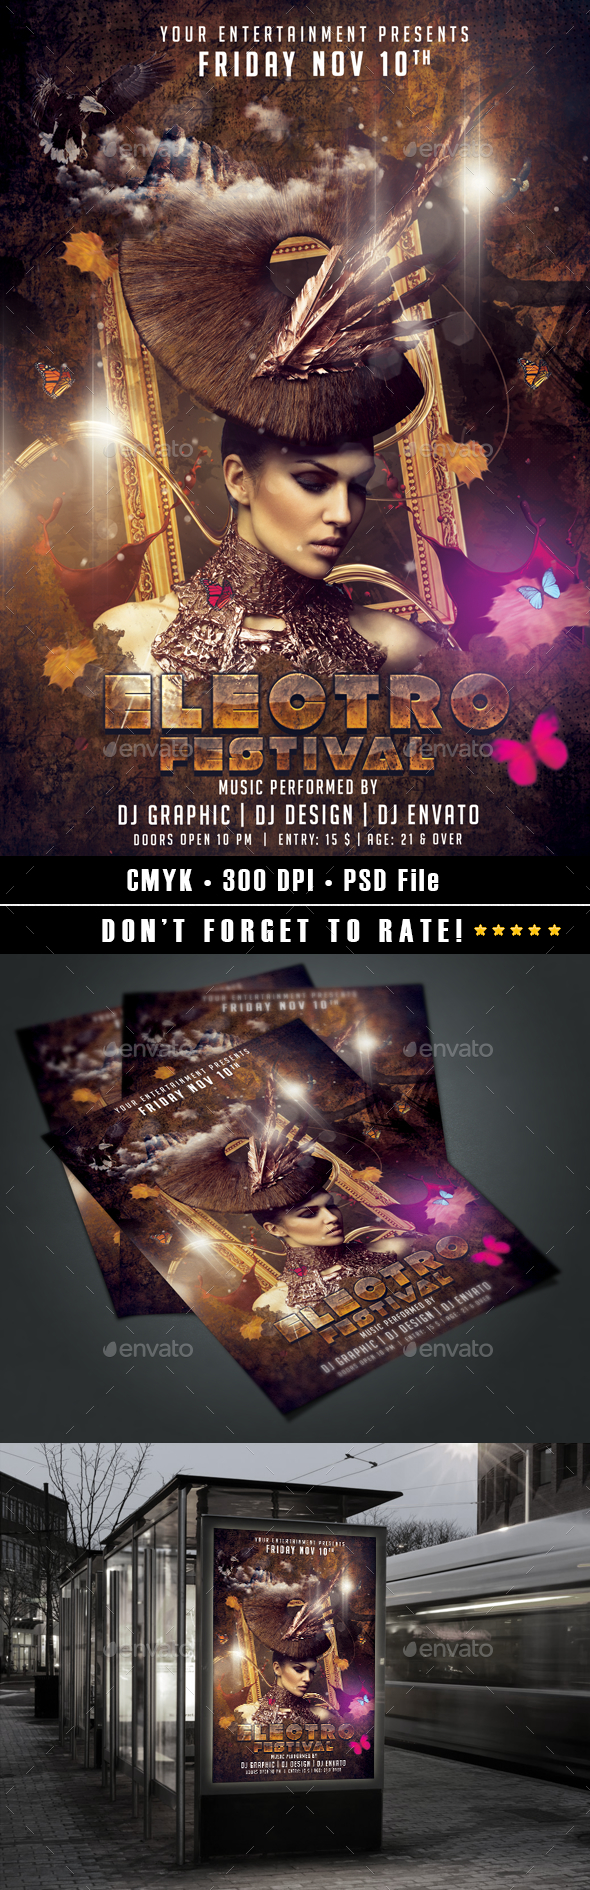 Electro Festival flyer template - Clubs & Parties Events